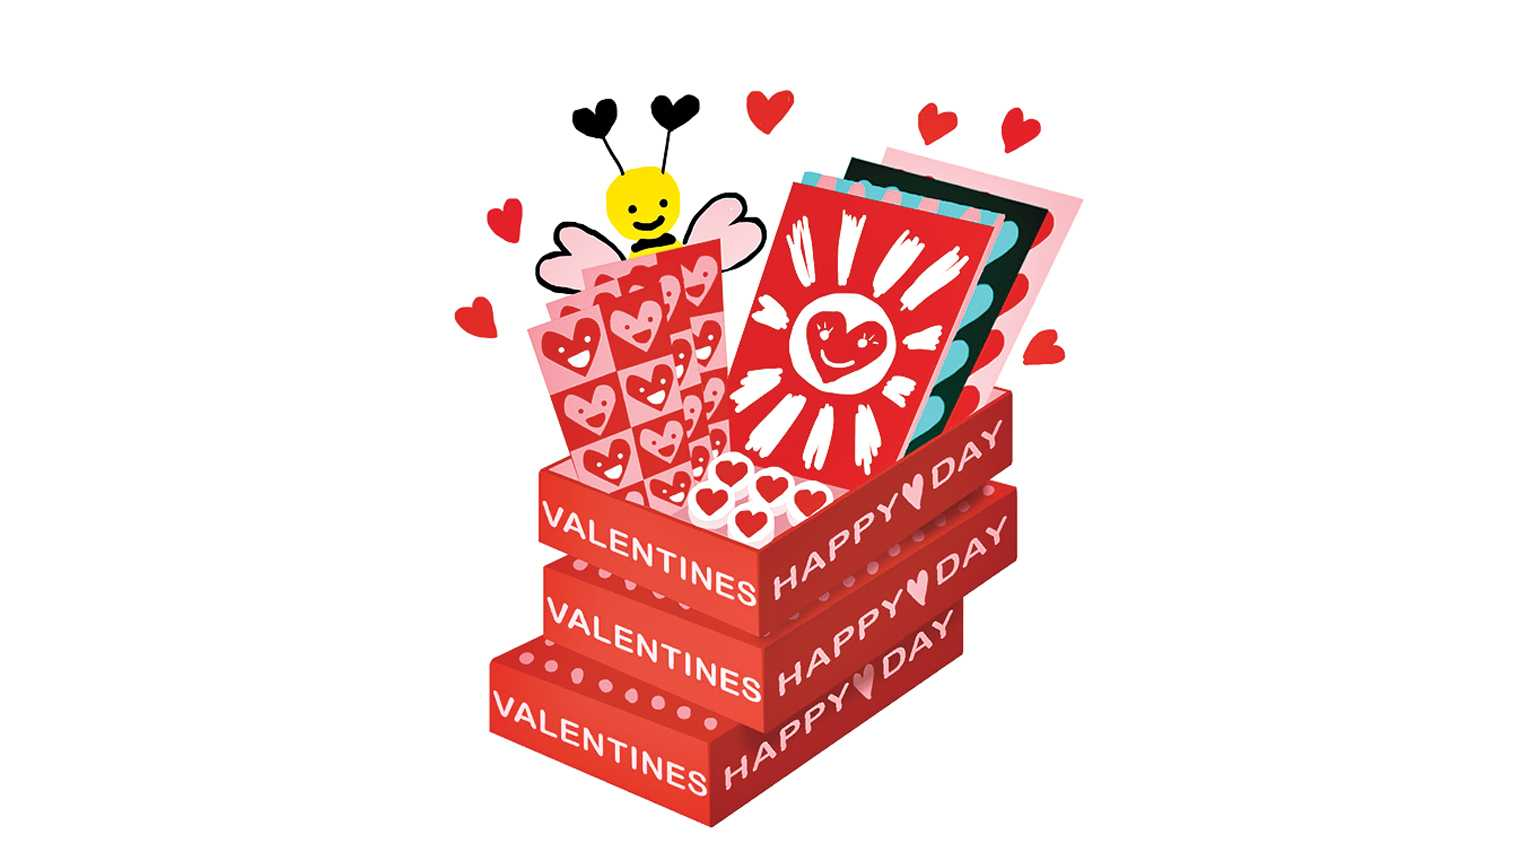 A stack of Valentine's Day card boxes; Illustration by Coco Masuda